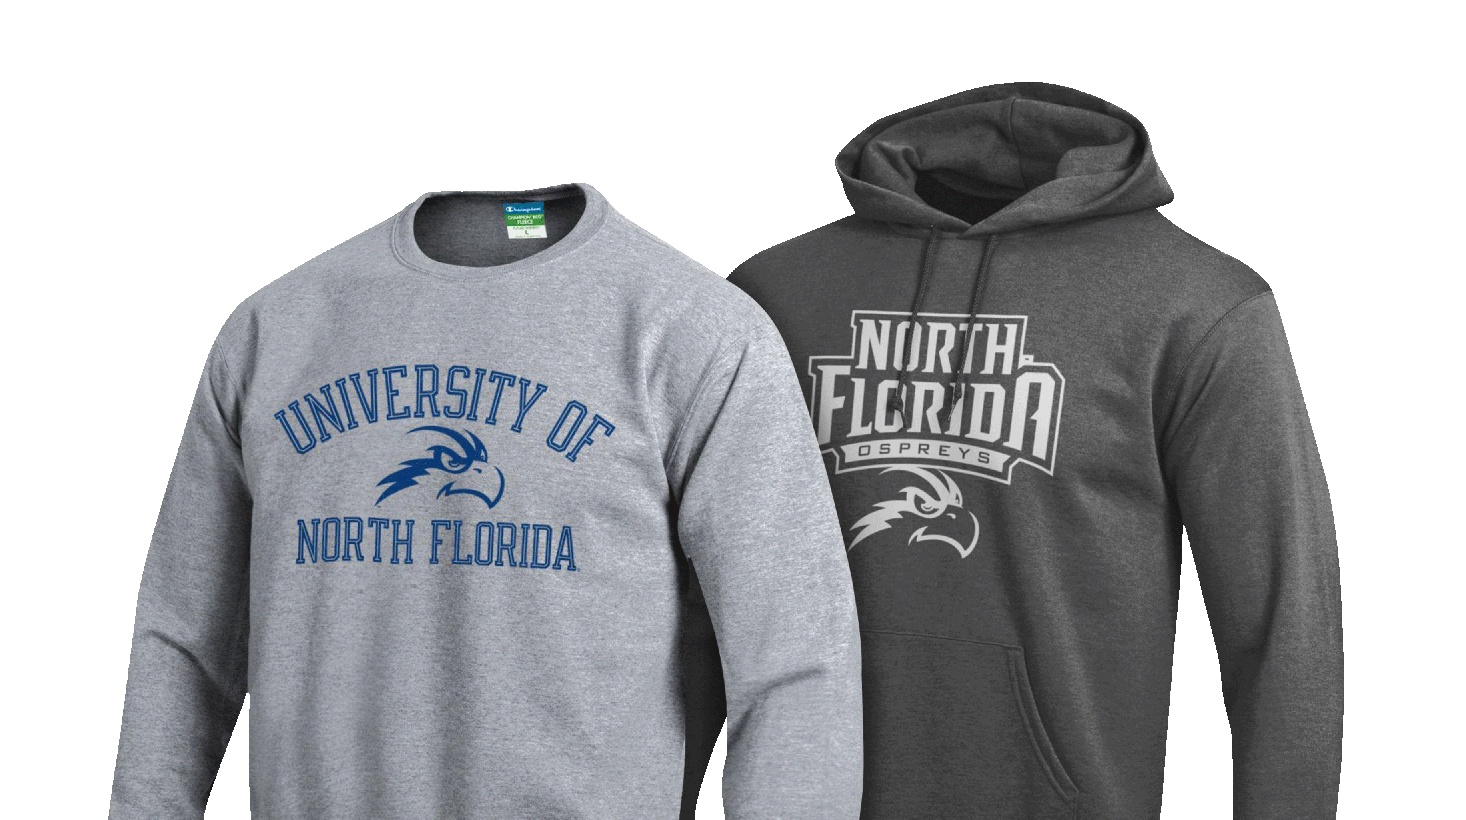 29f14e853 University of North Florida Bookstore Apparel, Merchandise, & Gifts